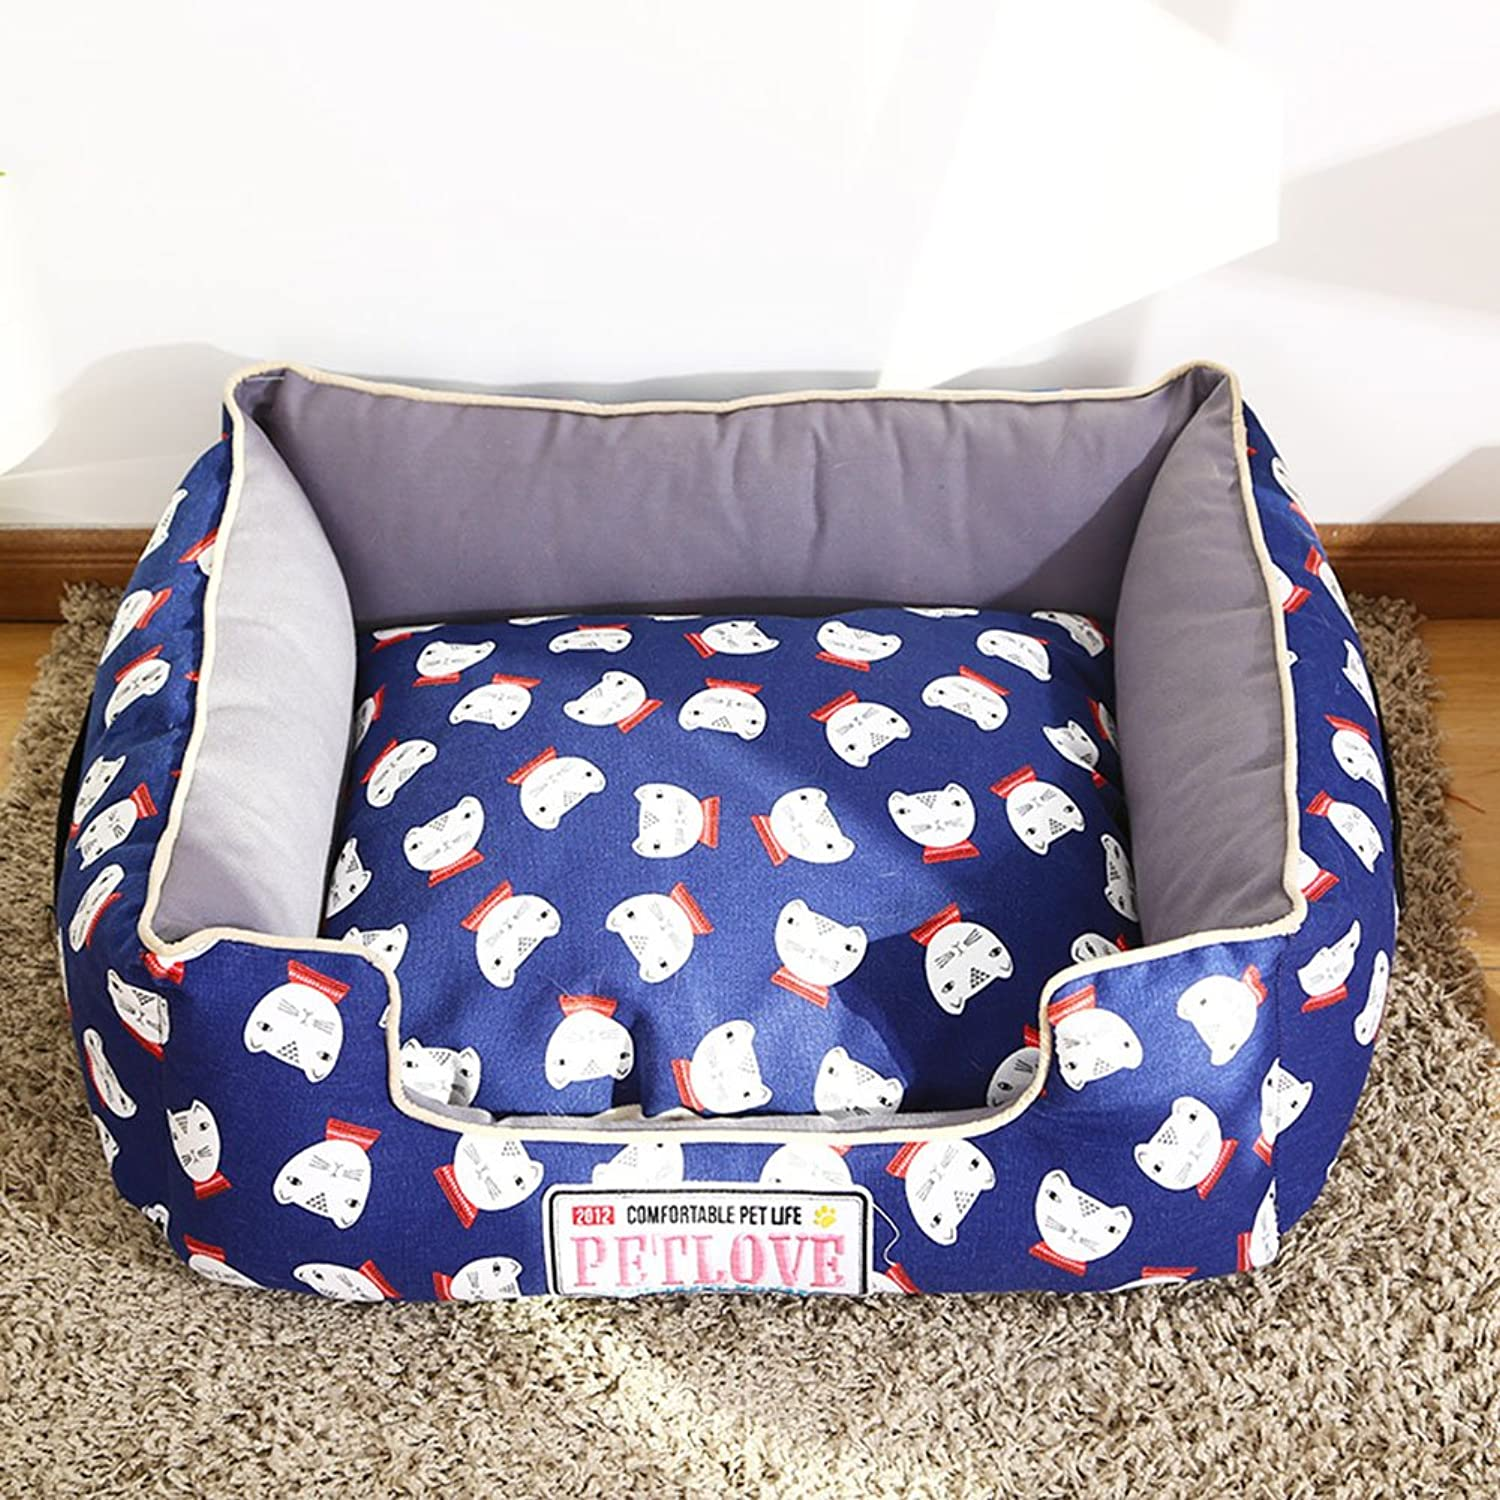 FH Pet Waterloo Teddy Dog Nest Small And Medium Sized Dogs Washable Four Seasons General Supplies Cat Cat Nest Dog Bed Bomei Bichon Dog Houses (Size   S50  40cm)